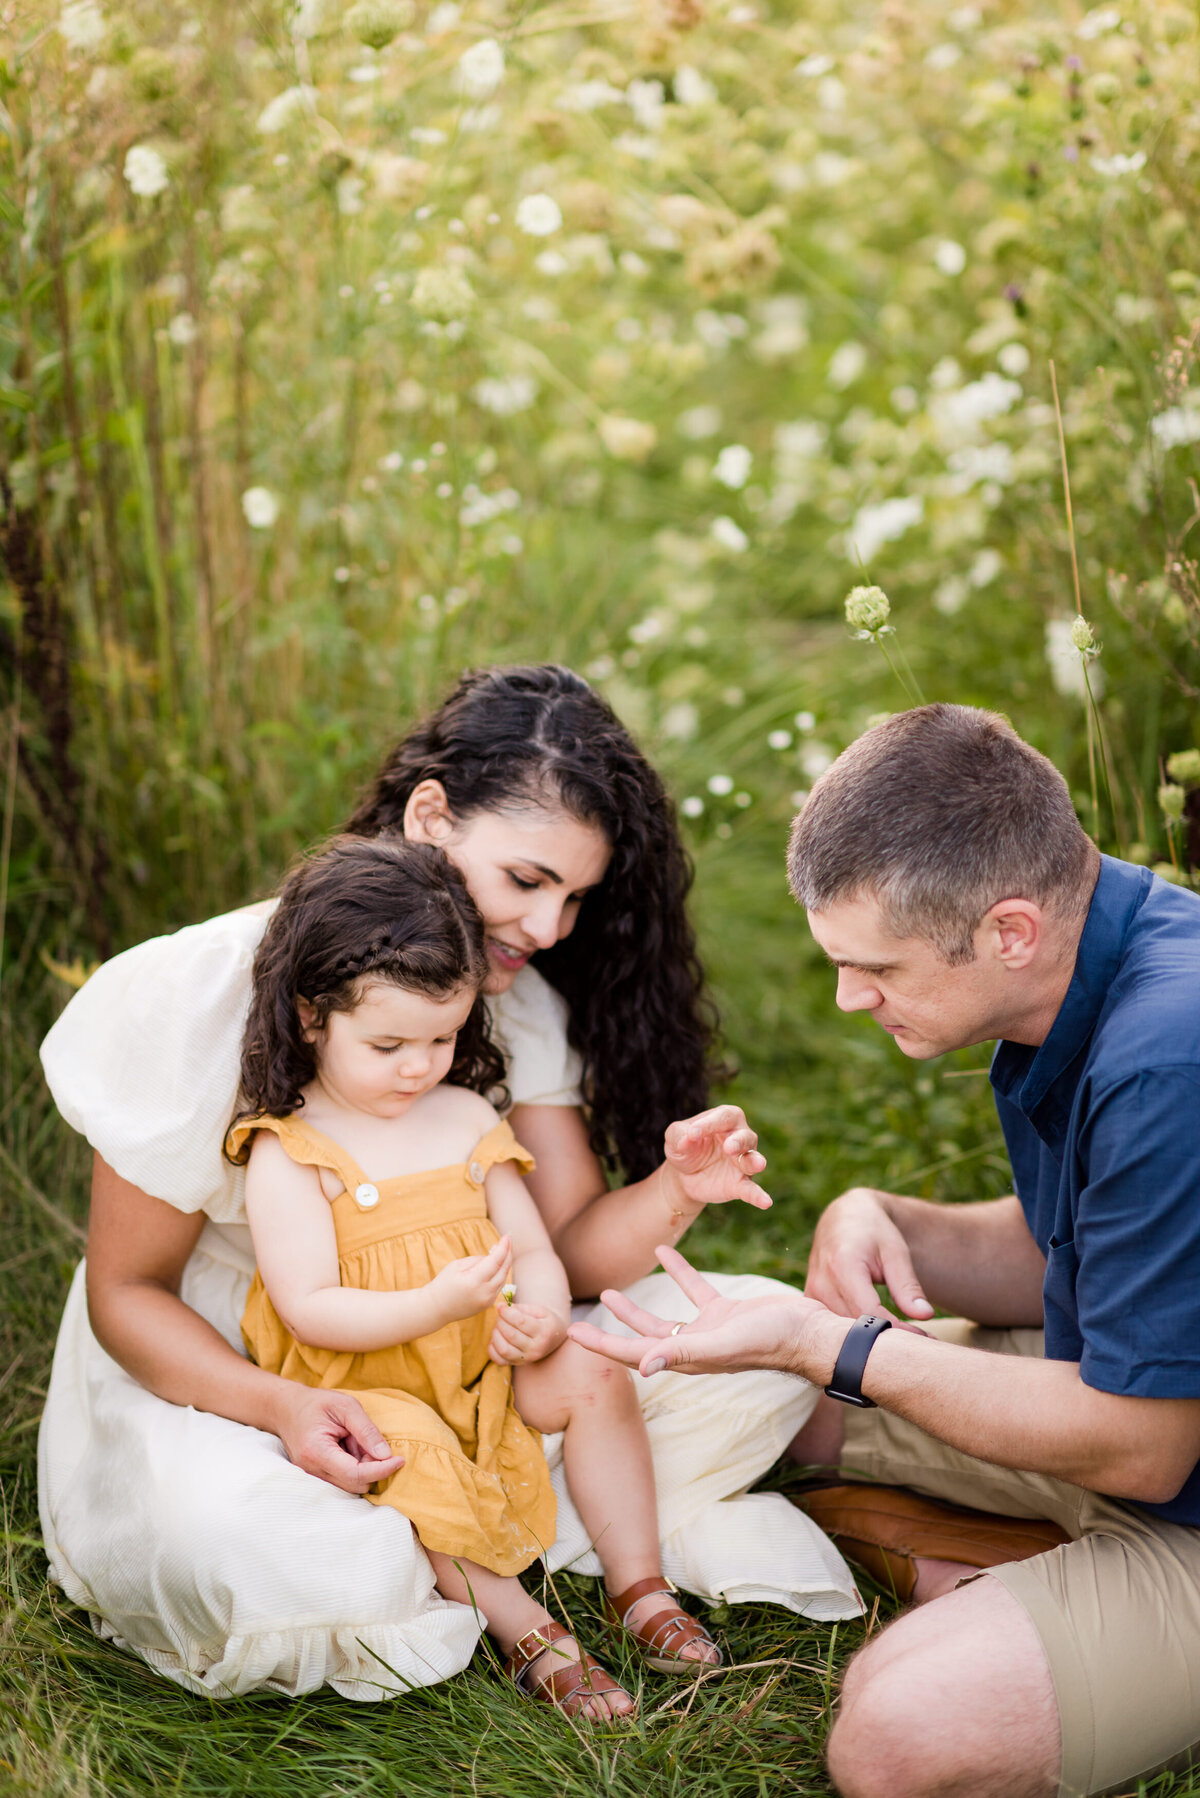 Boston-family-photographer-bella-wang-photography-Lifestyle-session-outdoor-wildflower-64